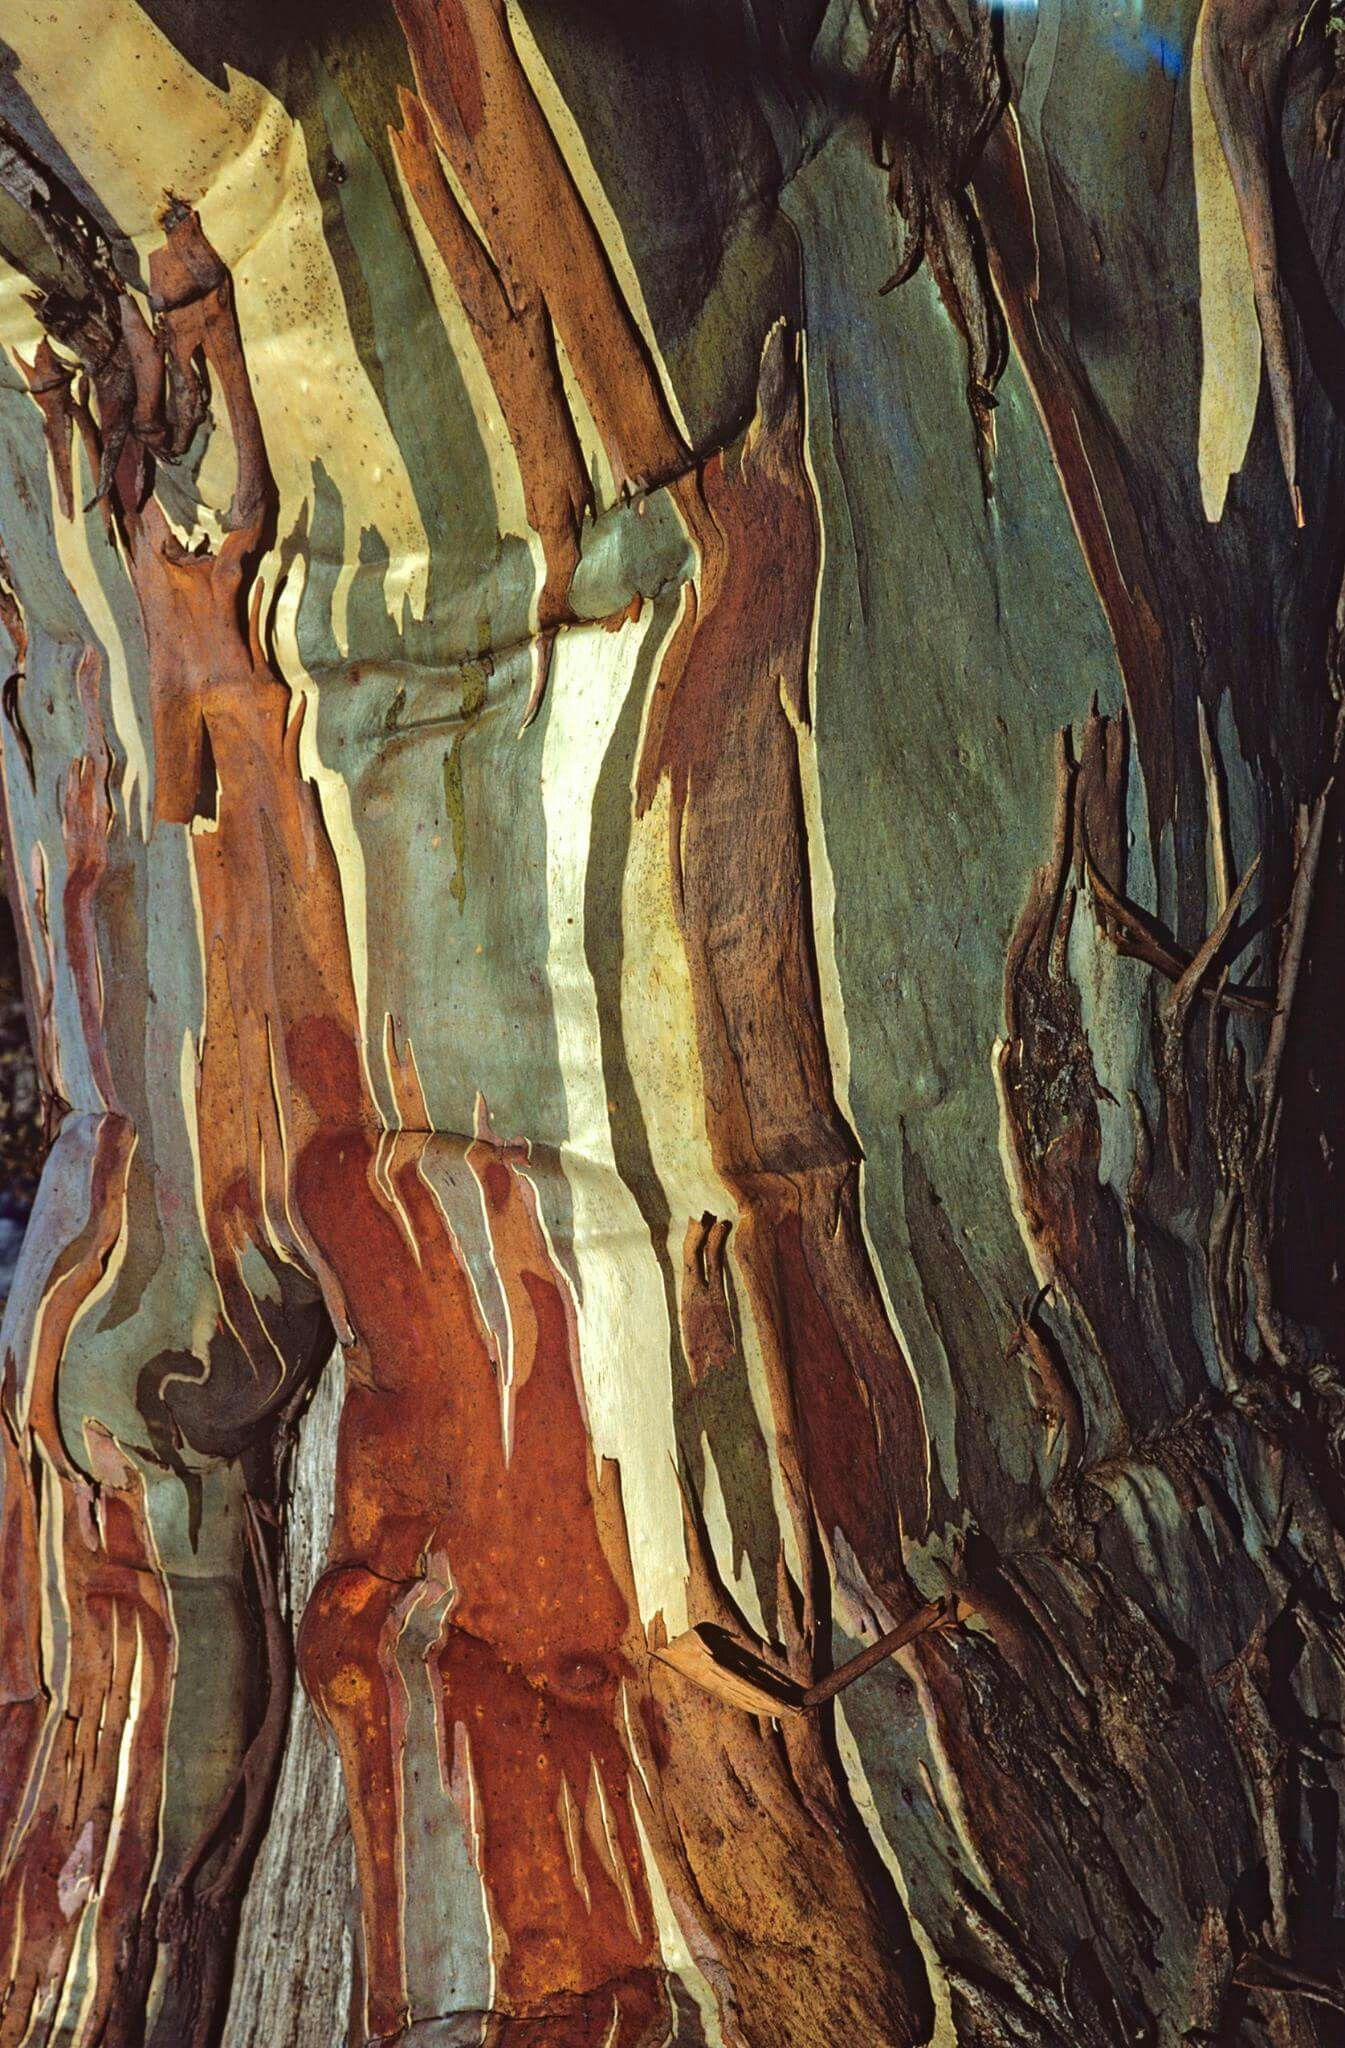 Snow Gum Bark Trees In 2019 Texture Art Natural